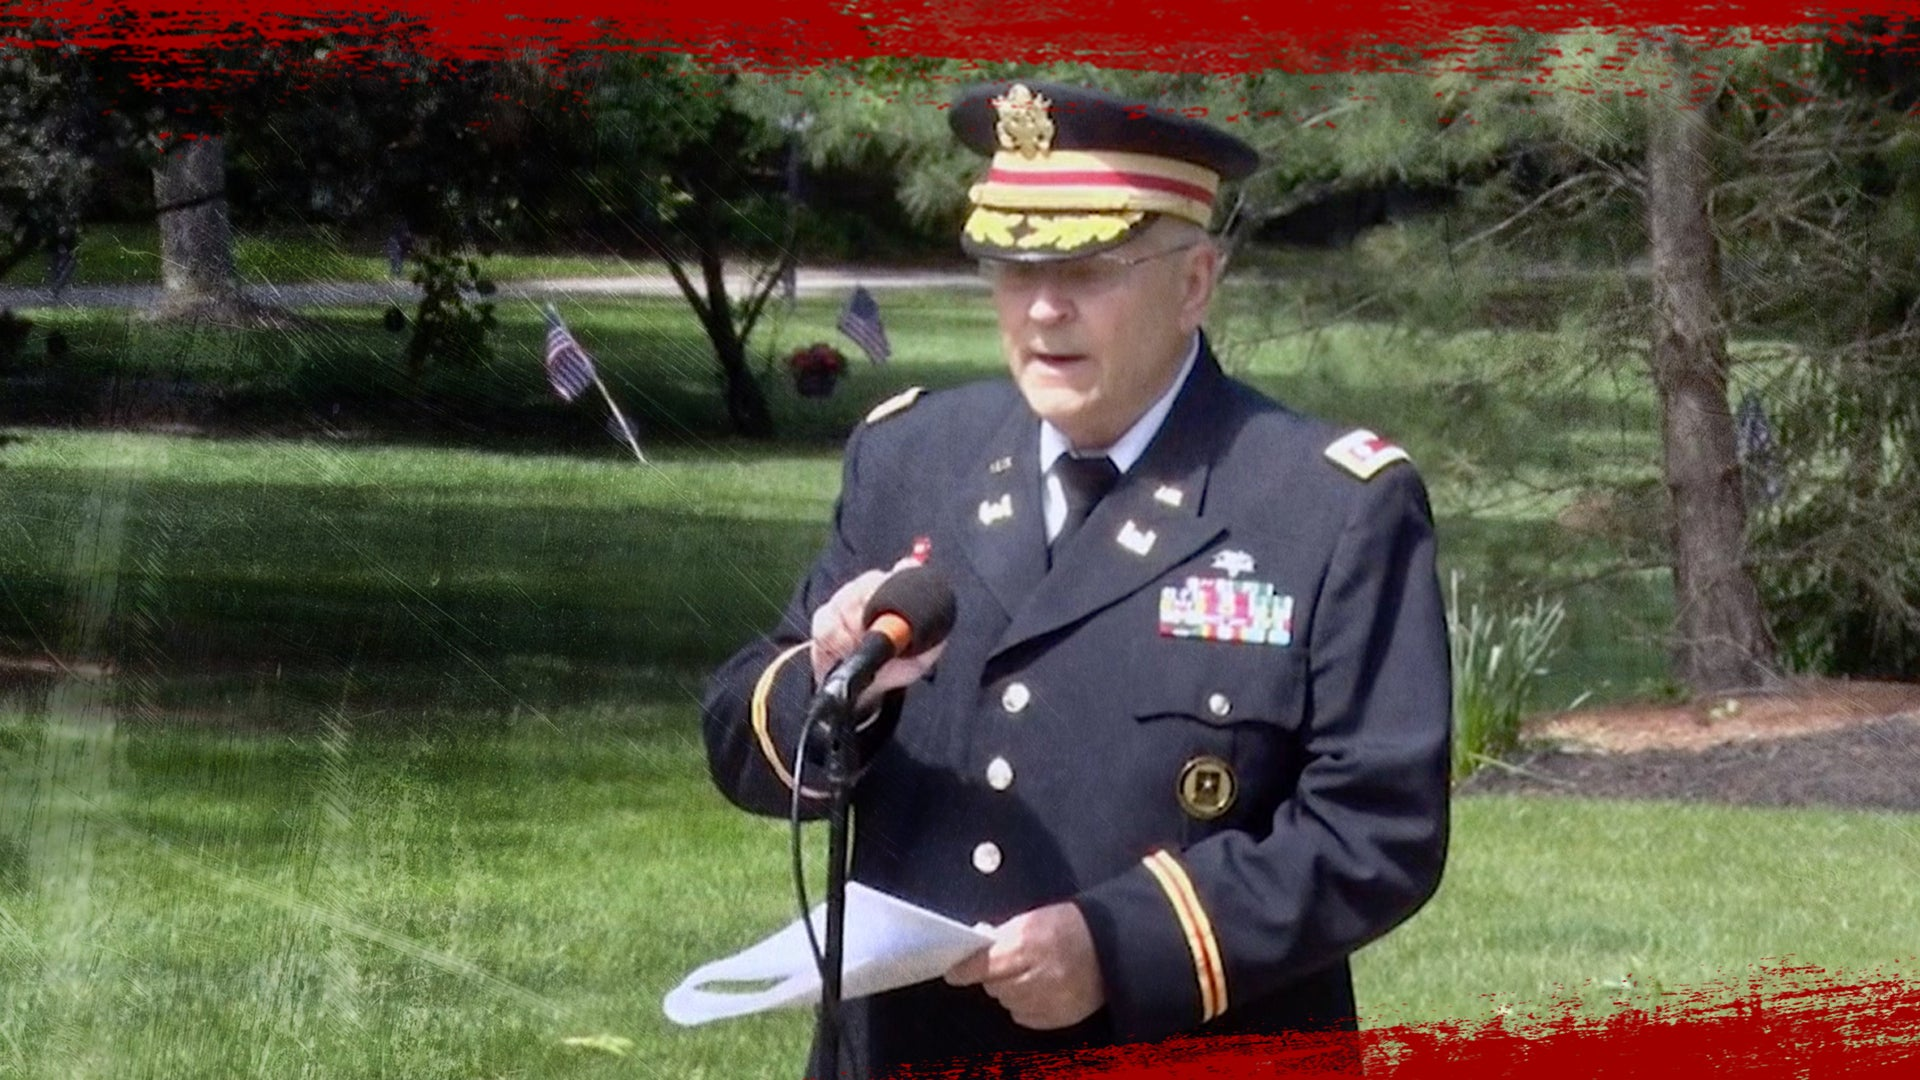 2 officials have resigned after veteran's mic was cut during Memorial Day speech